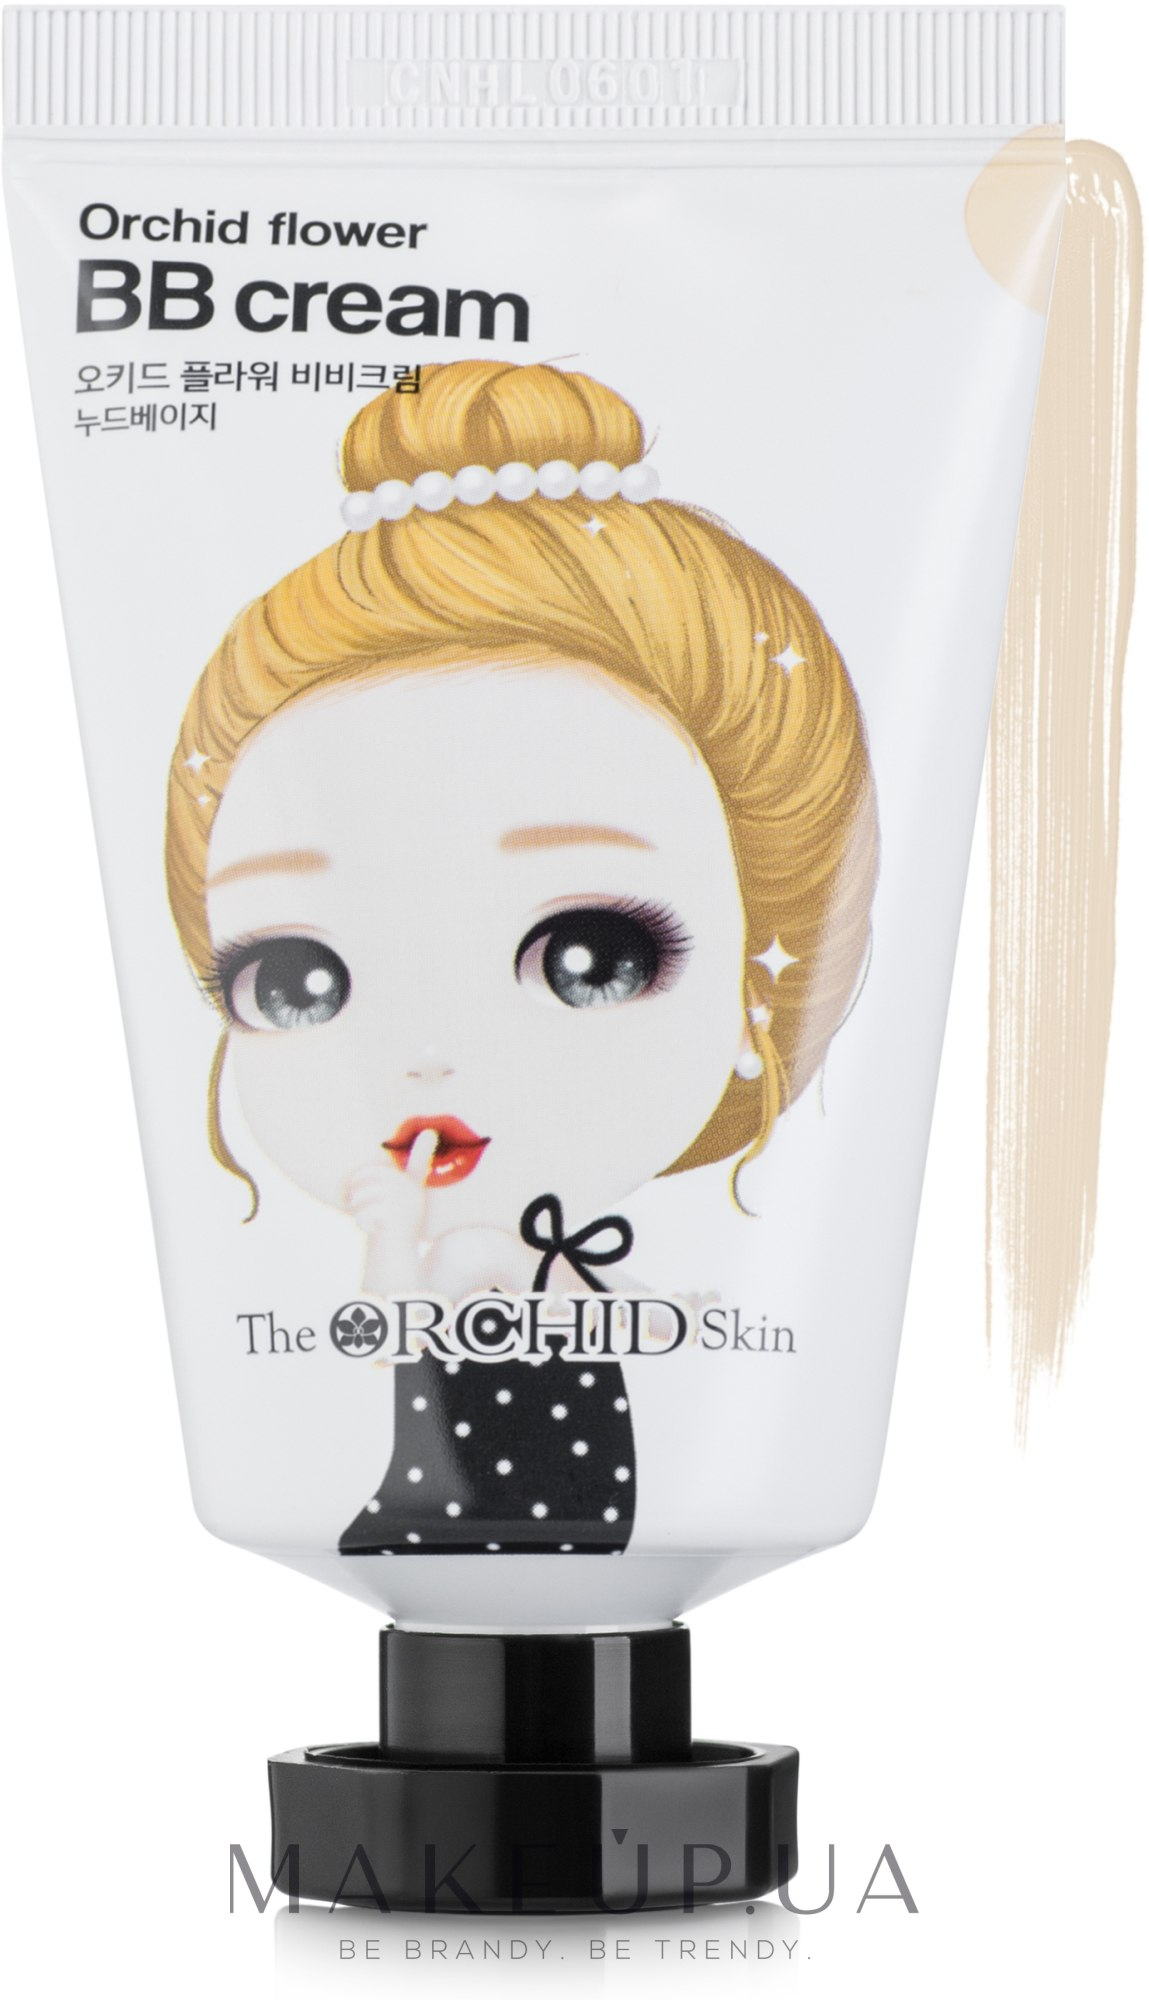 BB крем - The Orchid Skin Orchid Flower BB Cream — фото Pink Beige